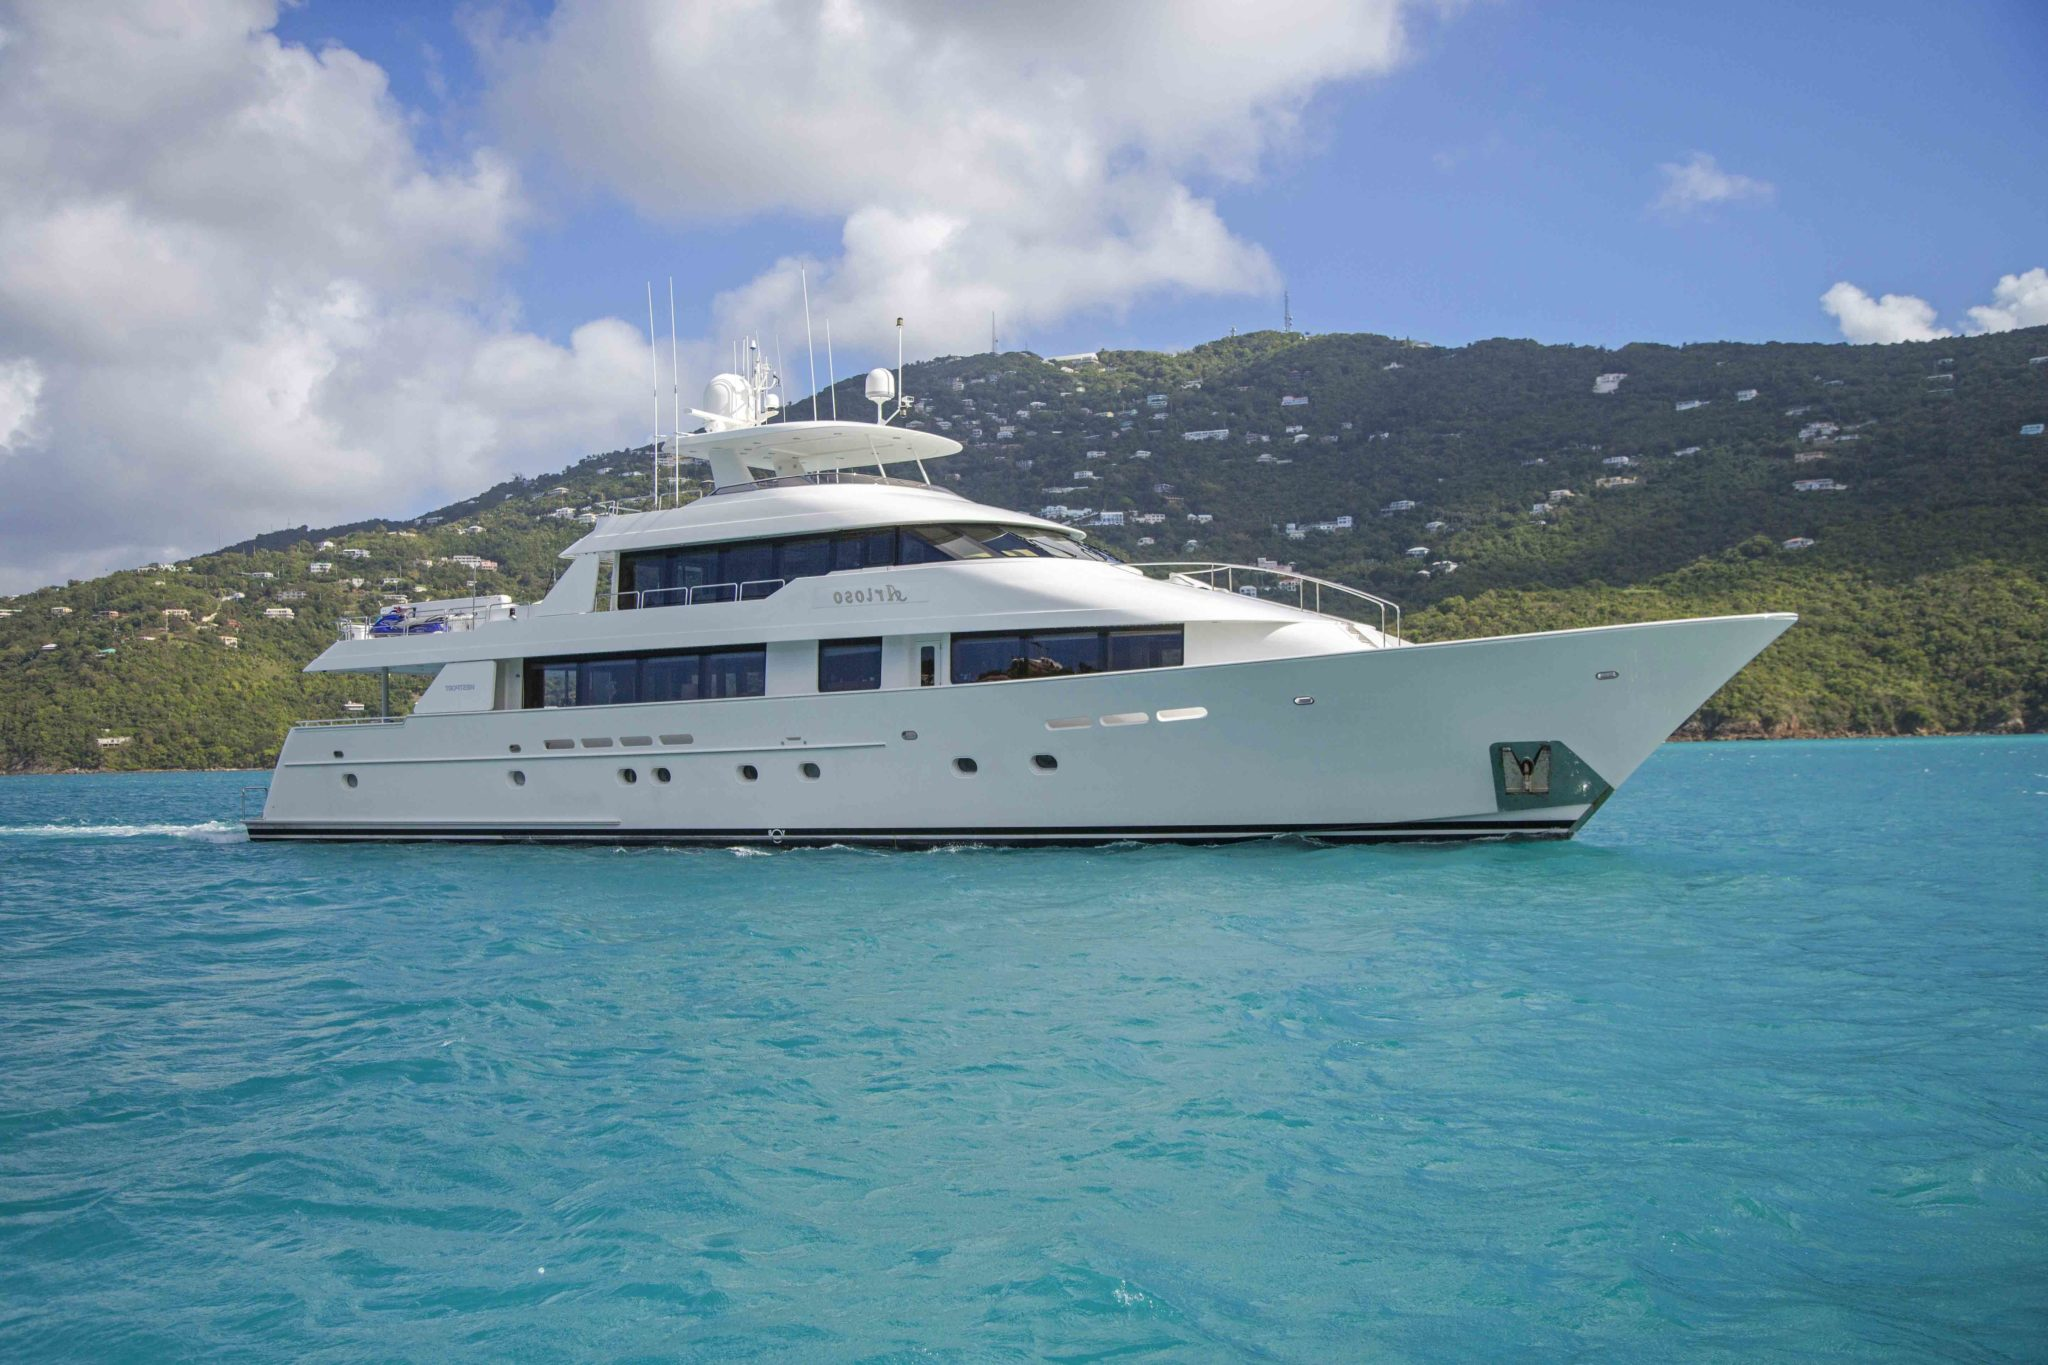 Arioso a 130-ft Westport in St Thomas.